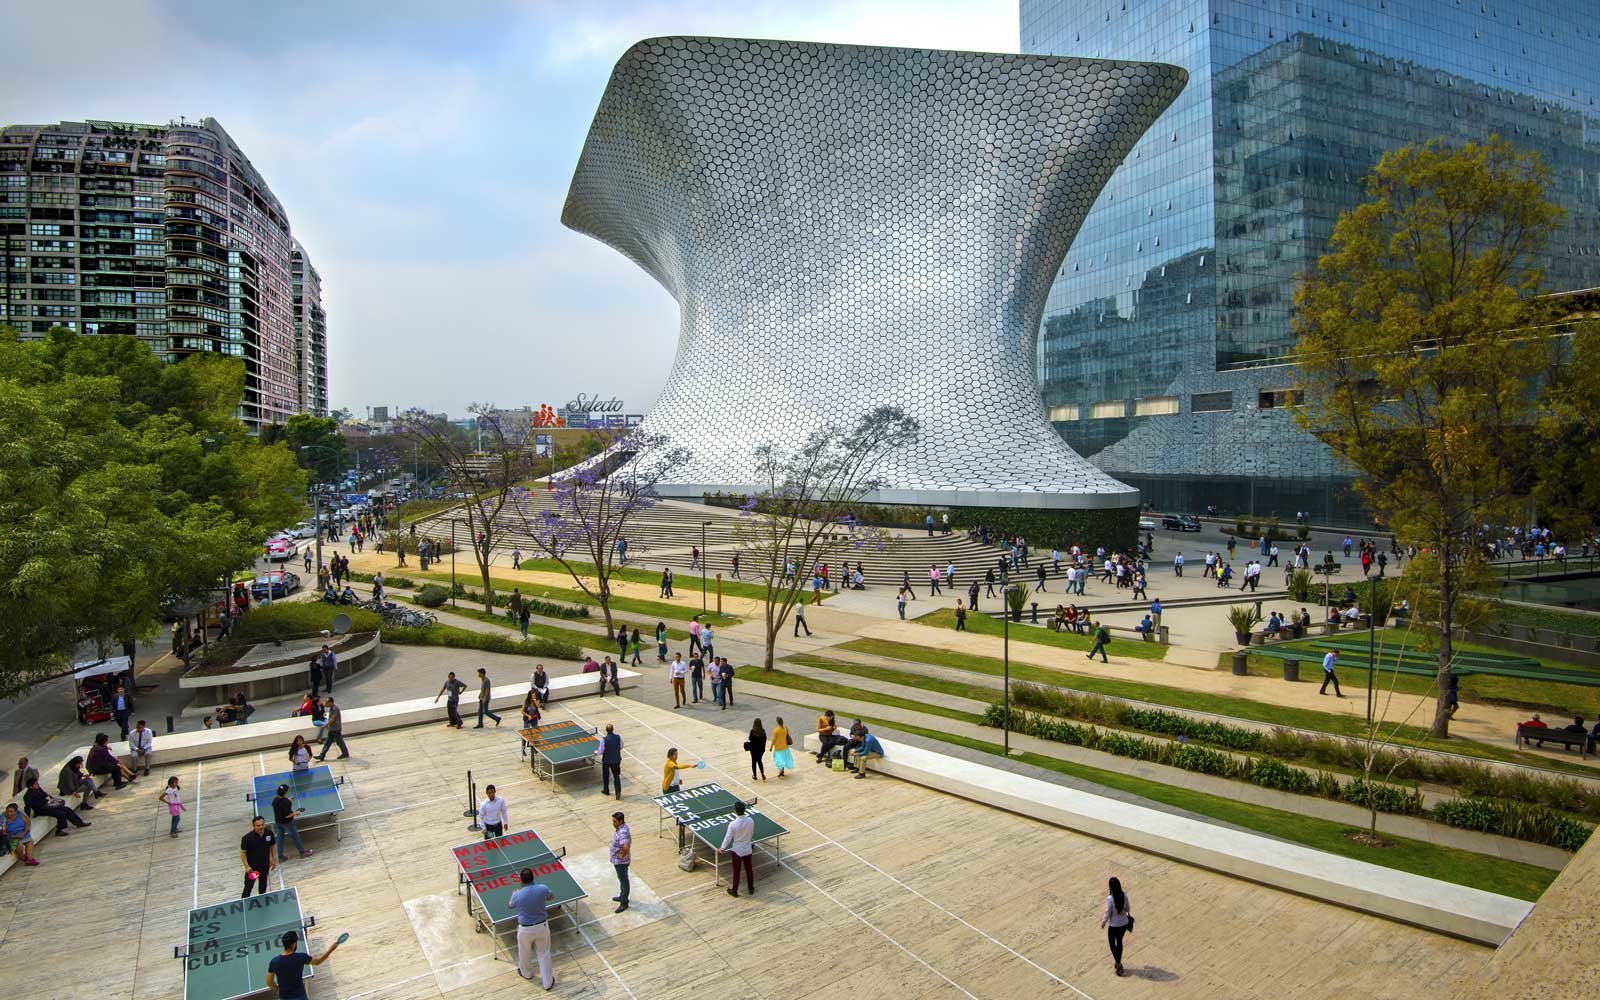 The aluminium paneled Soumaya Musuem stands in Plaza Carso in the Polanco district of Mexico City